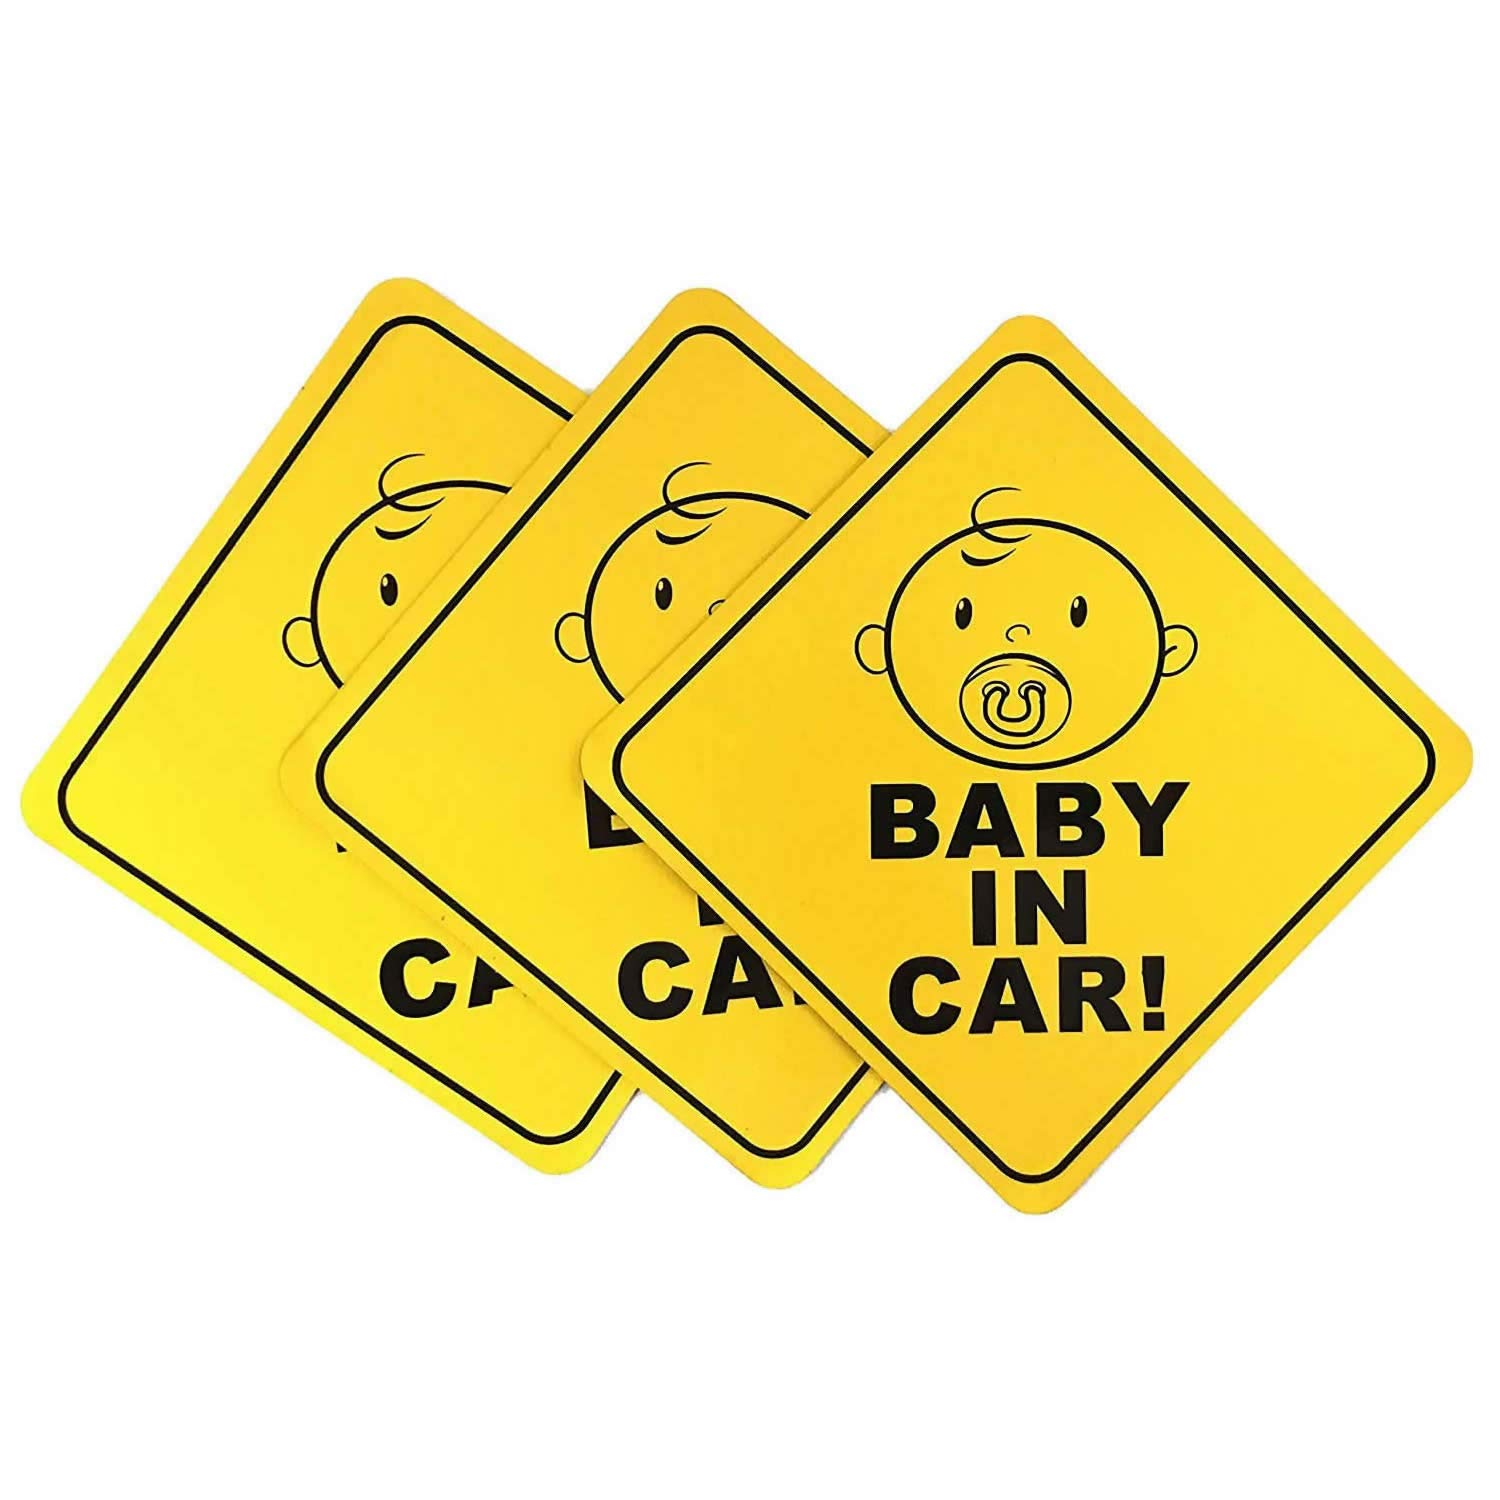 """Baby On Board Car Magnet Sticker (3 Packs), Magnetic and Reflective Safety, Cute Decal Design Sign, US Department of Transportation Recommend Color & Shape 5""""x5"""